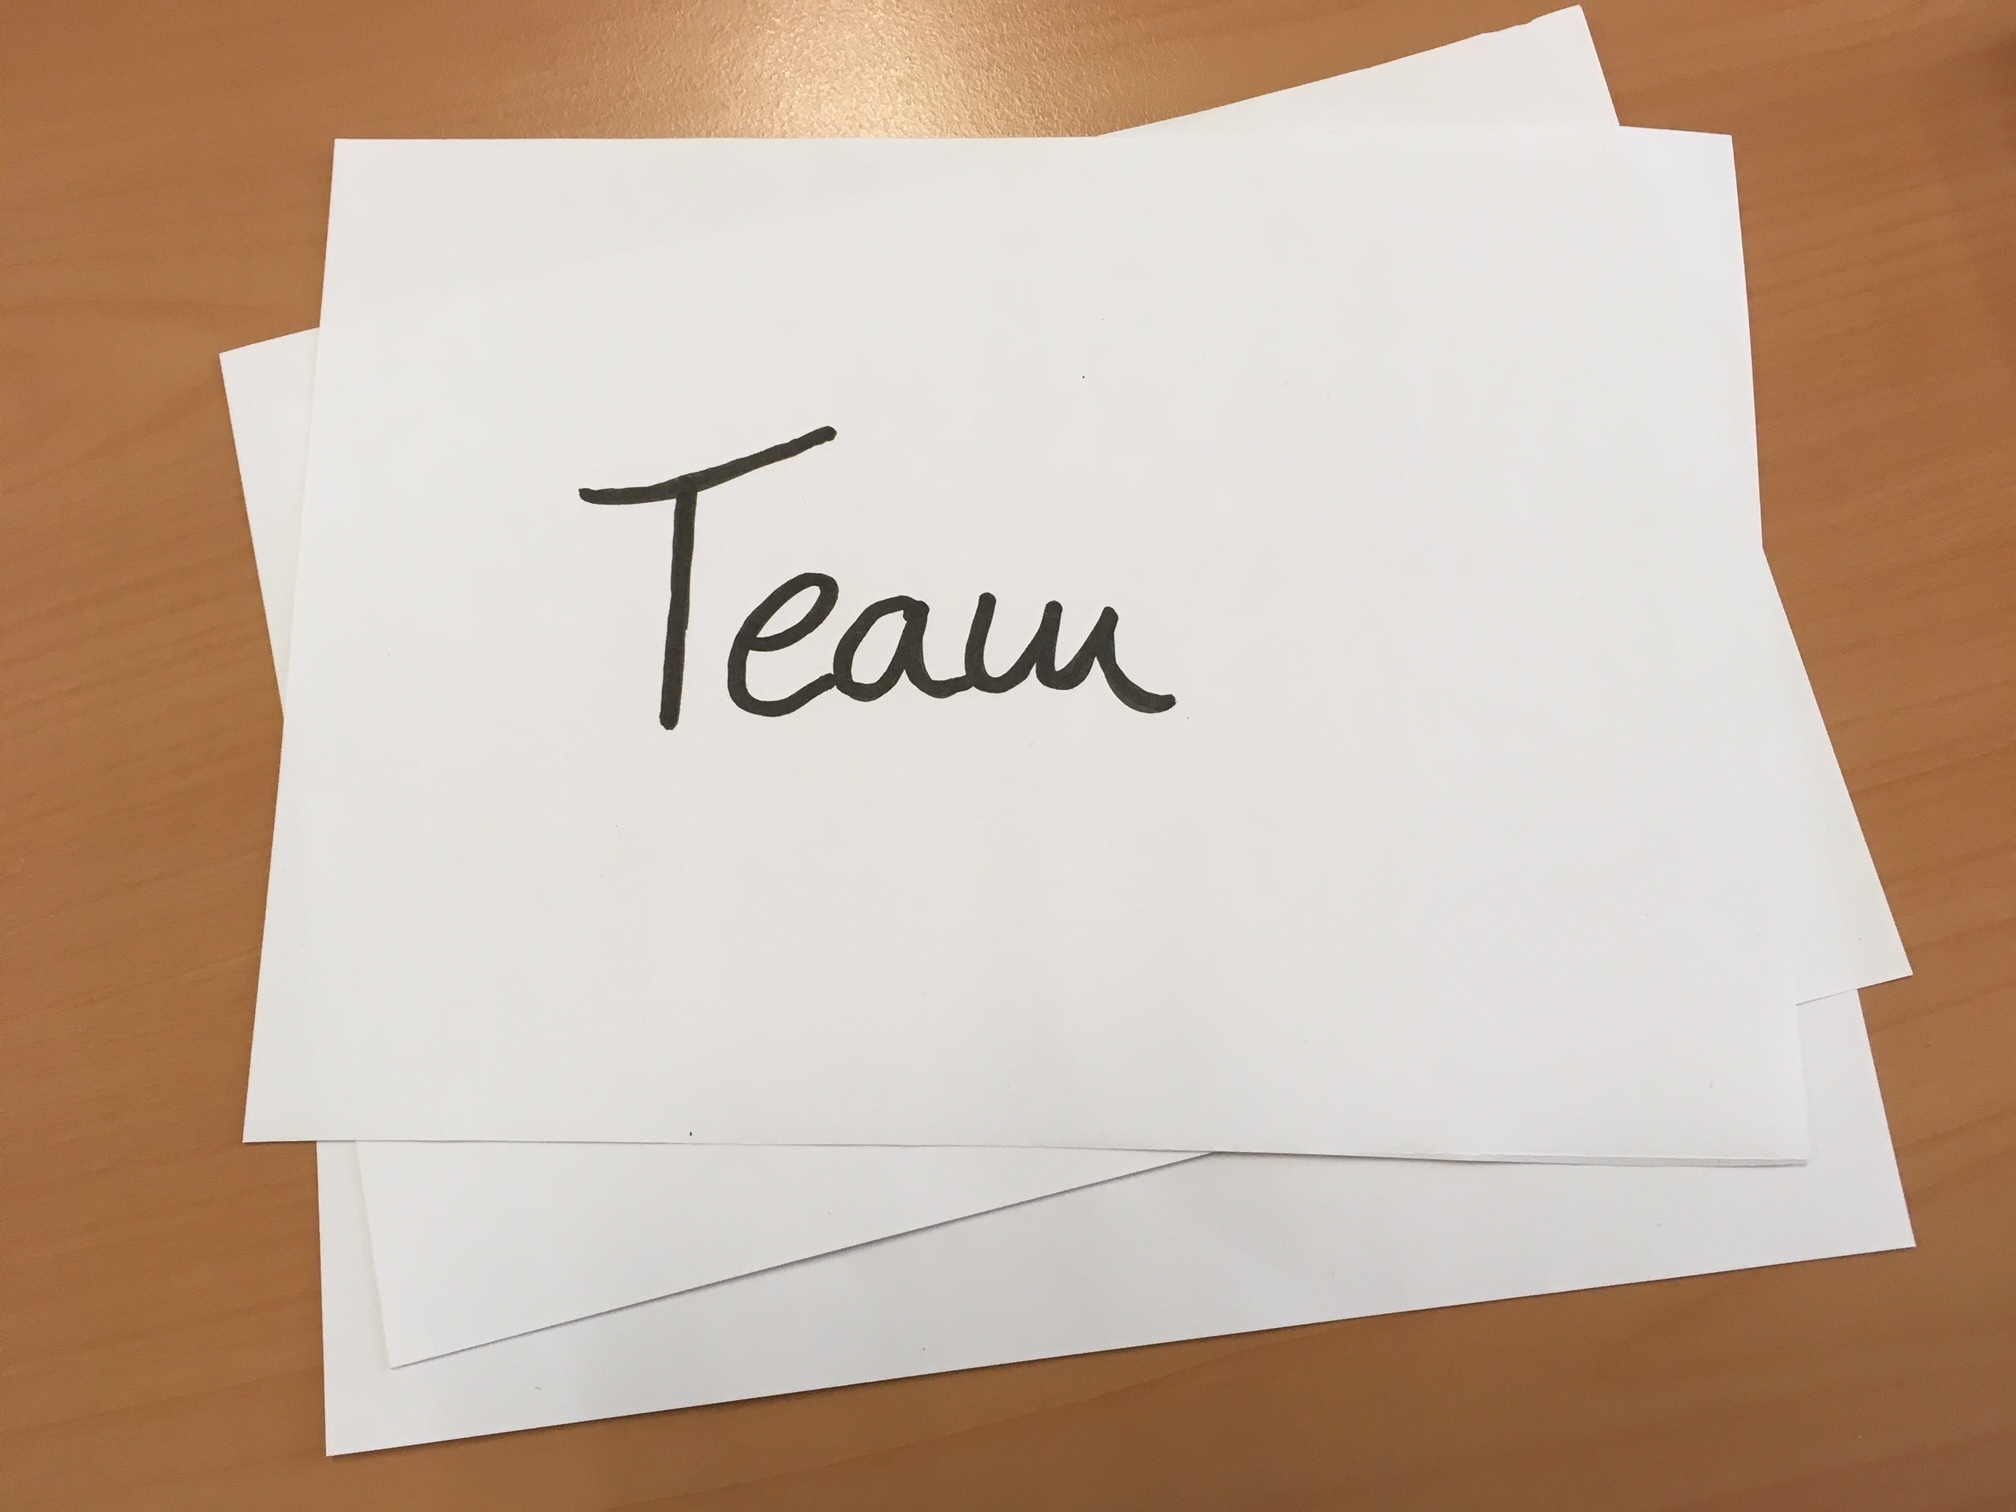 """Team"" - black writing on white background"